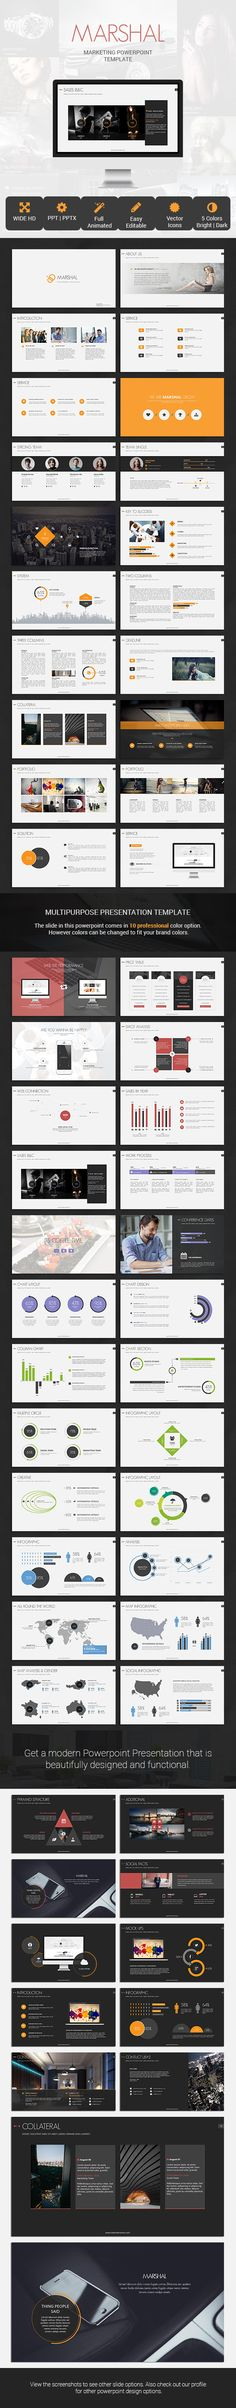 modern Powerpoint template that is beautifully designed and functional #light #marketing #modern • Available here → http://graphicriver.net/item/marshal-marketing-presentation-template/8008052?s_rank=419&ref=pxcr